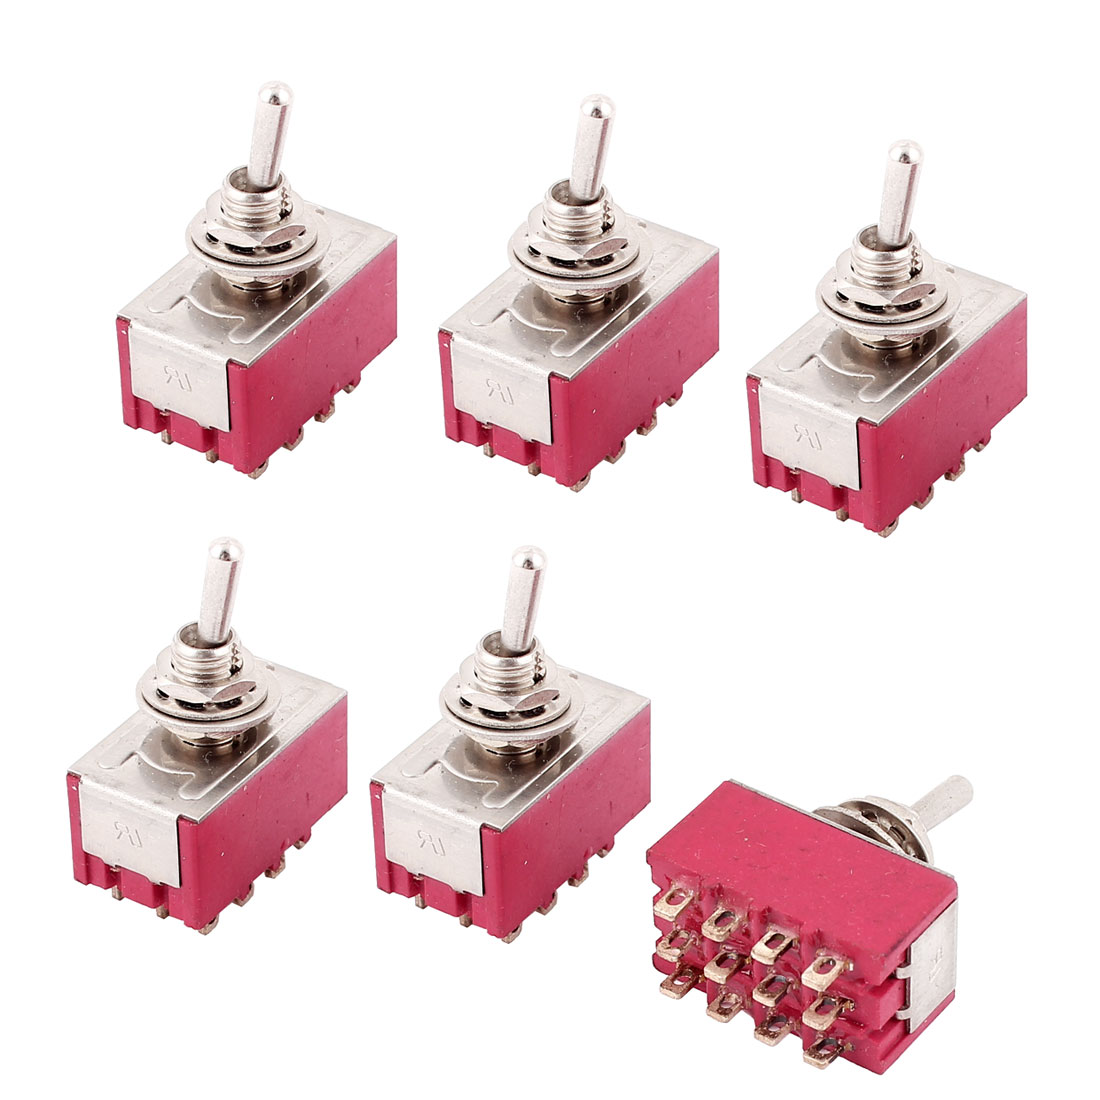 AC 250V/2A 125V/6A 6mm Panel Mount 4PDT ON/ON Locking Toggle Switch 6pcs